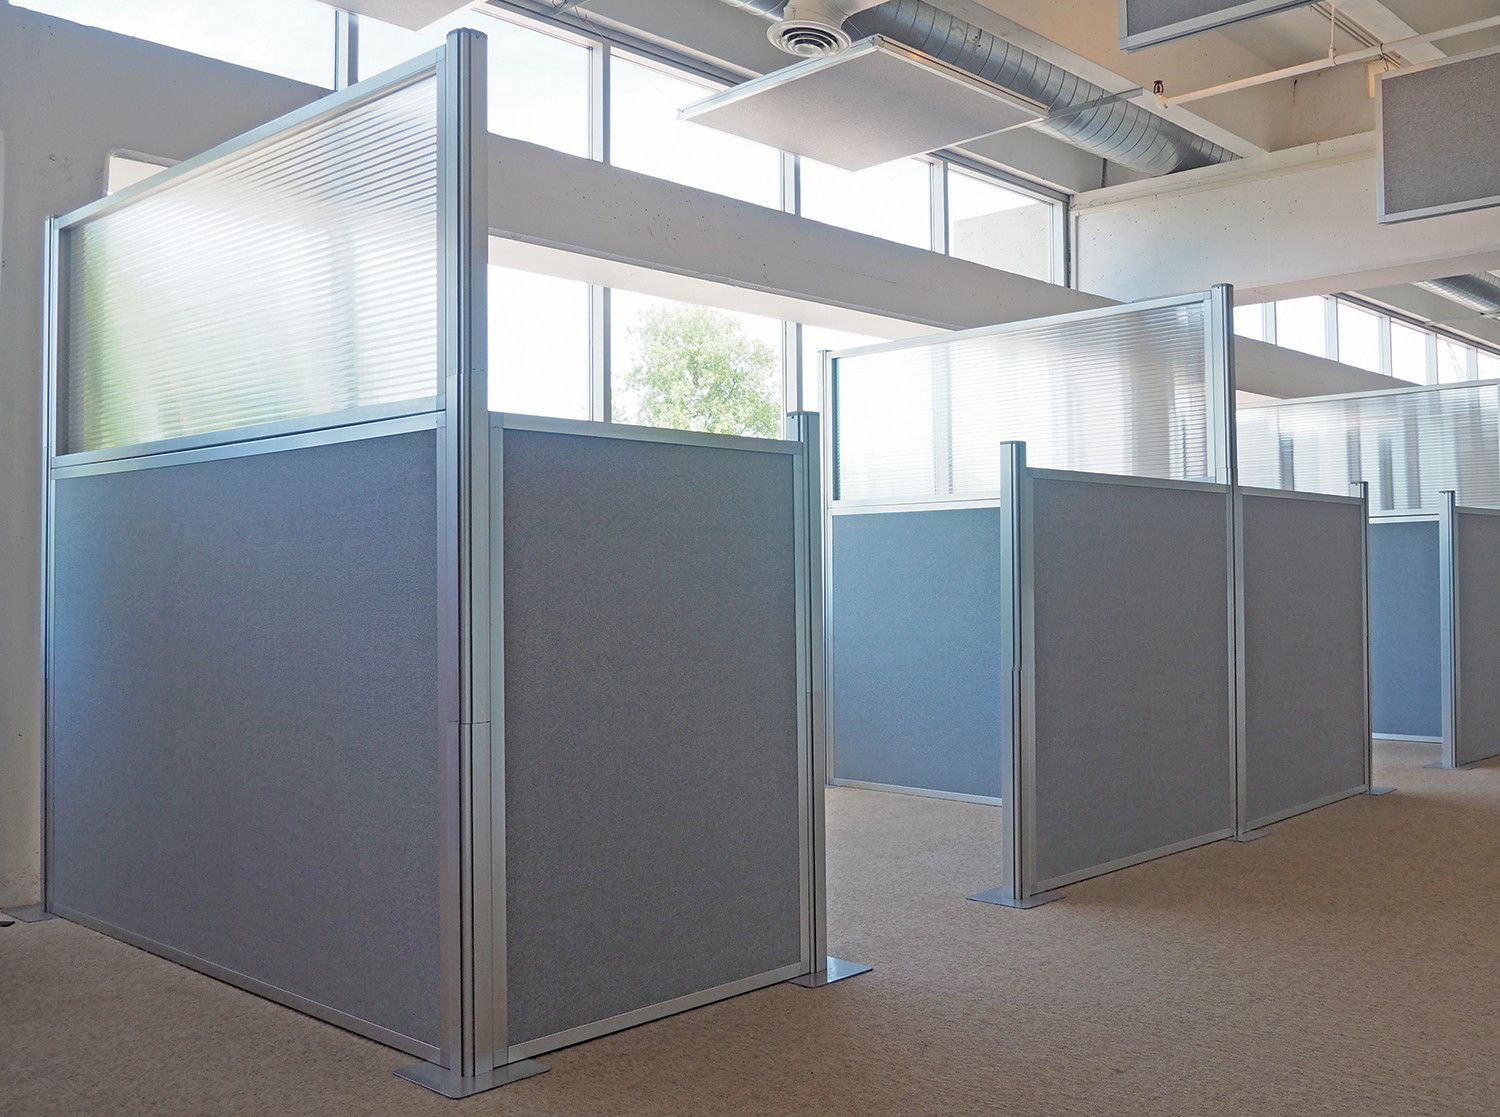 office cubicle organization. The Hush Panels (DIY Cubicle Partitions) Are A Wise Choice To Grow With Your Organization. Office Organization S